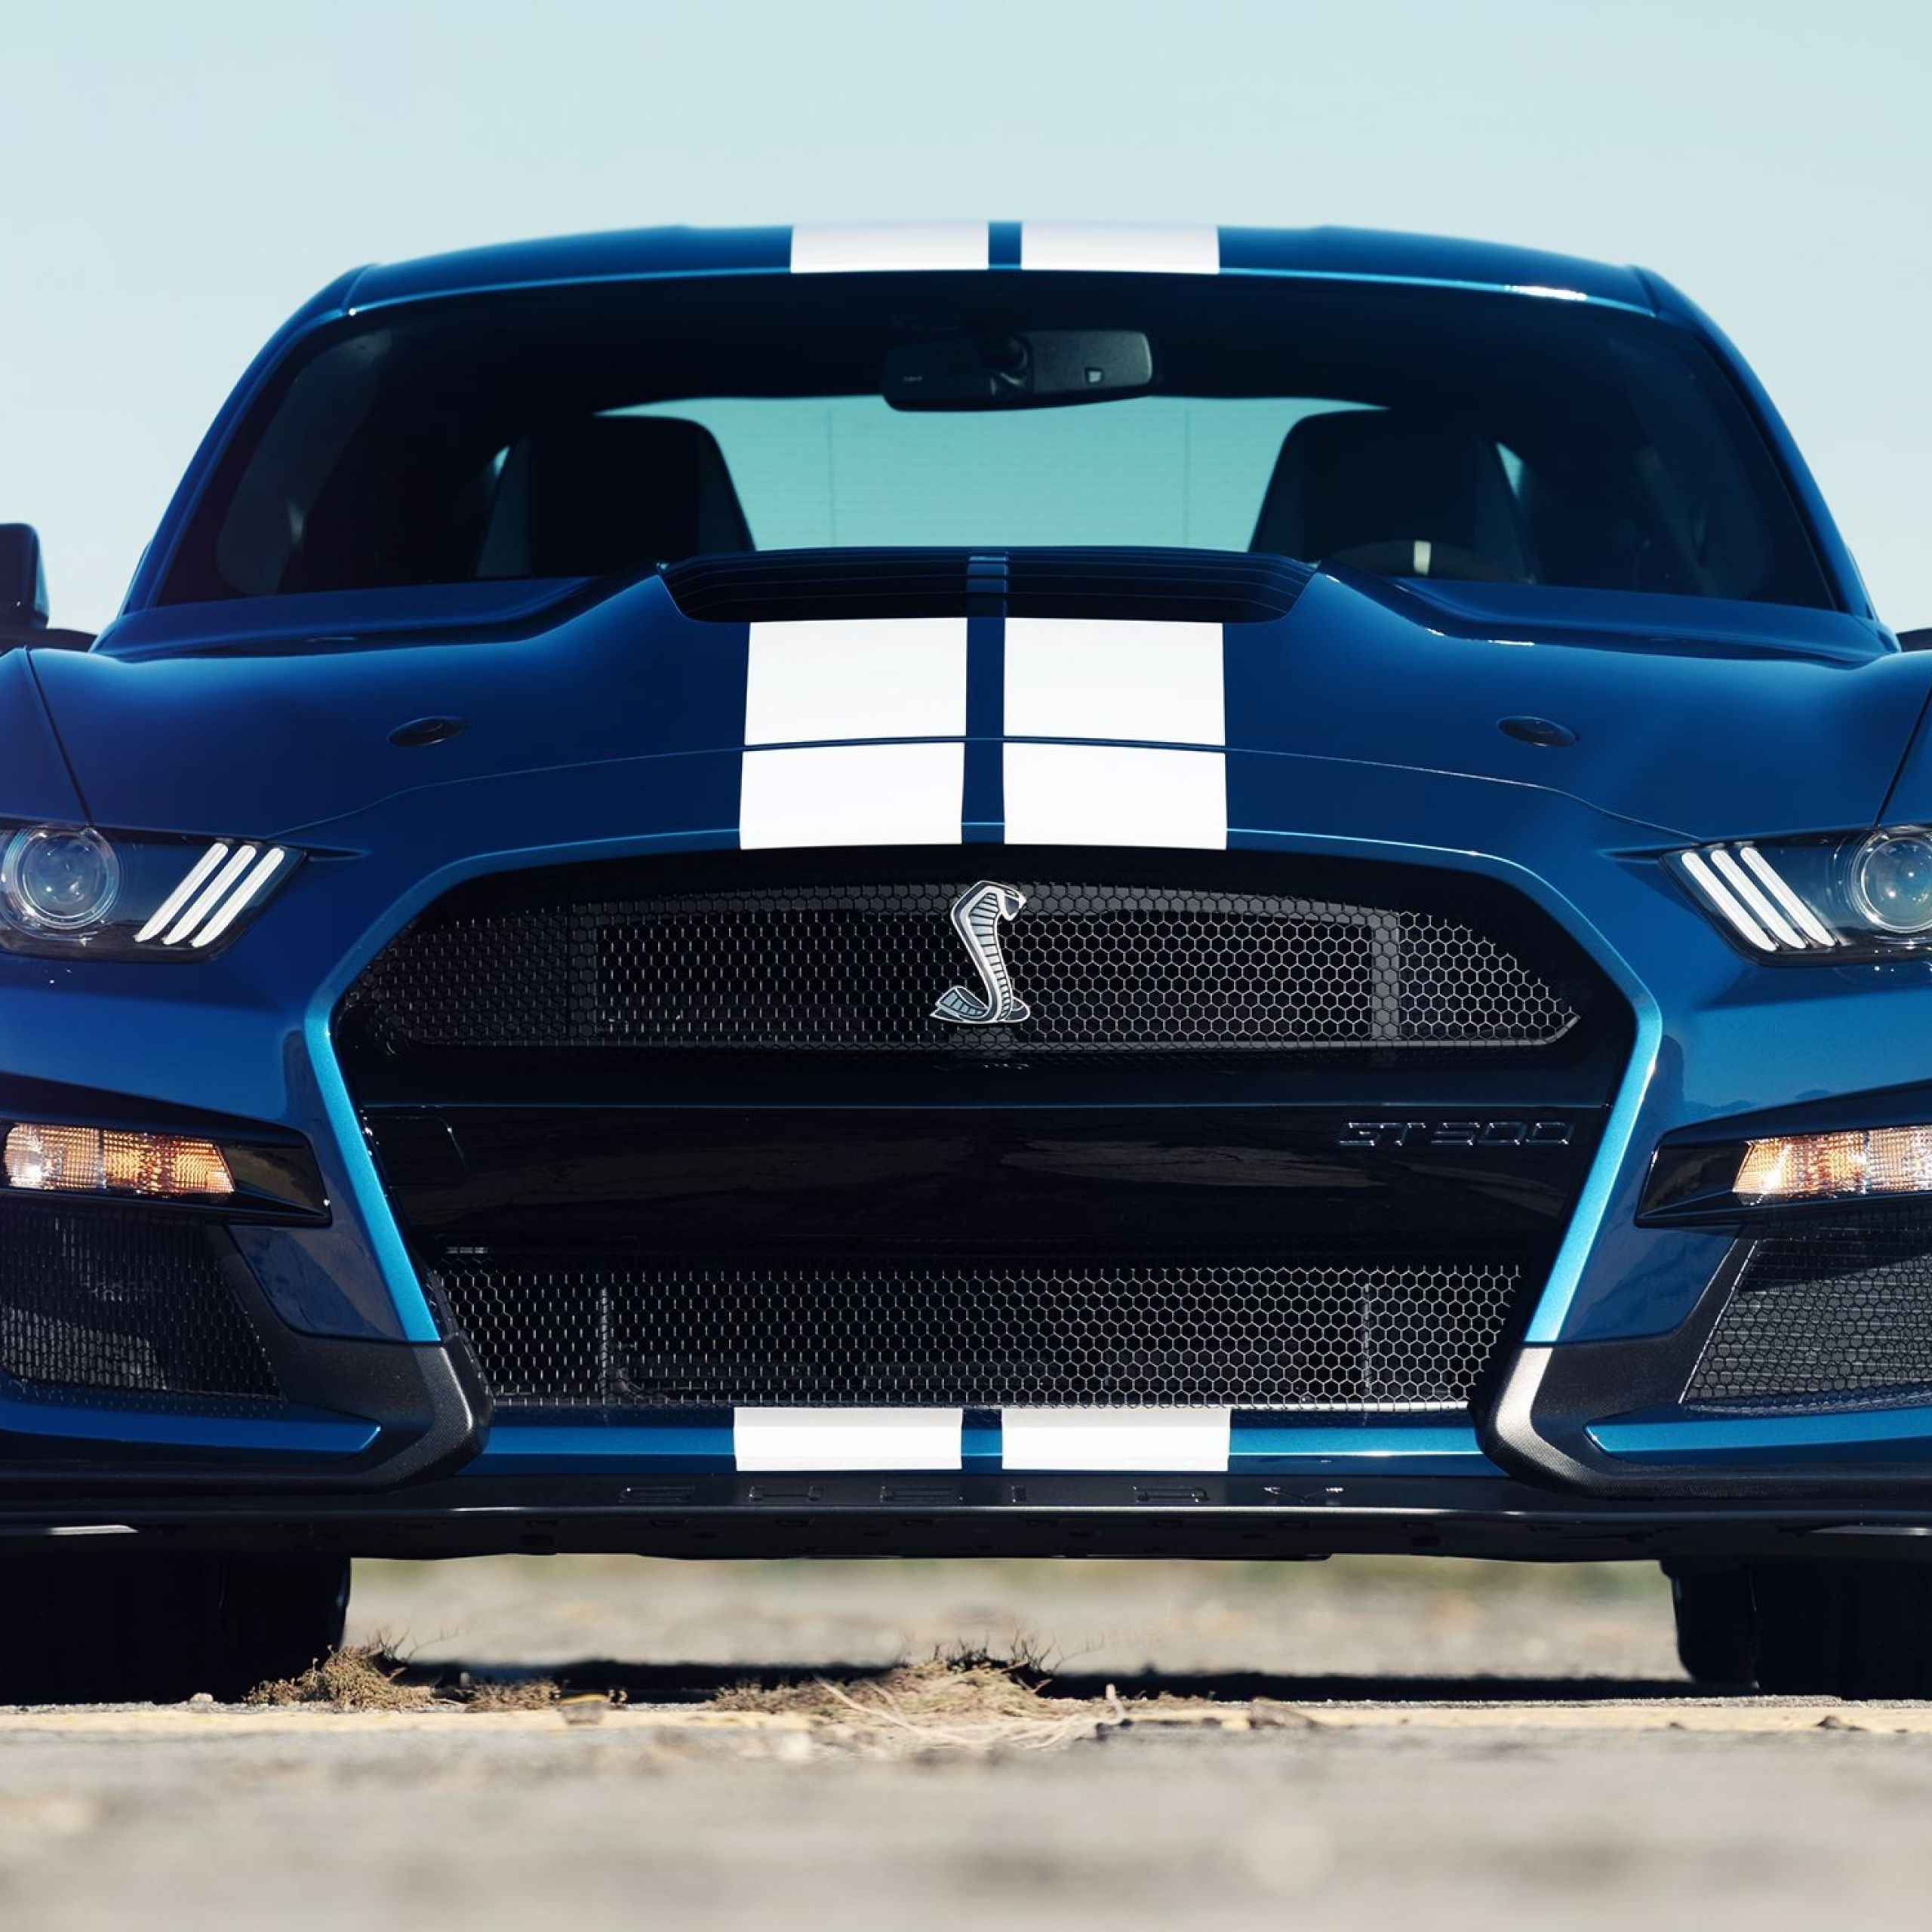 Cars for Sale Near Me Under 500 Beautiful 20 Cheapest Performance Cars for 2020 Cheap 500 Horsepower